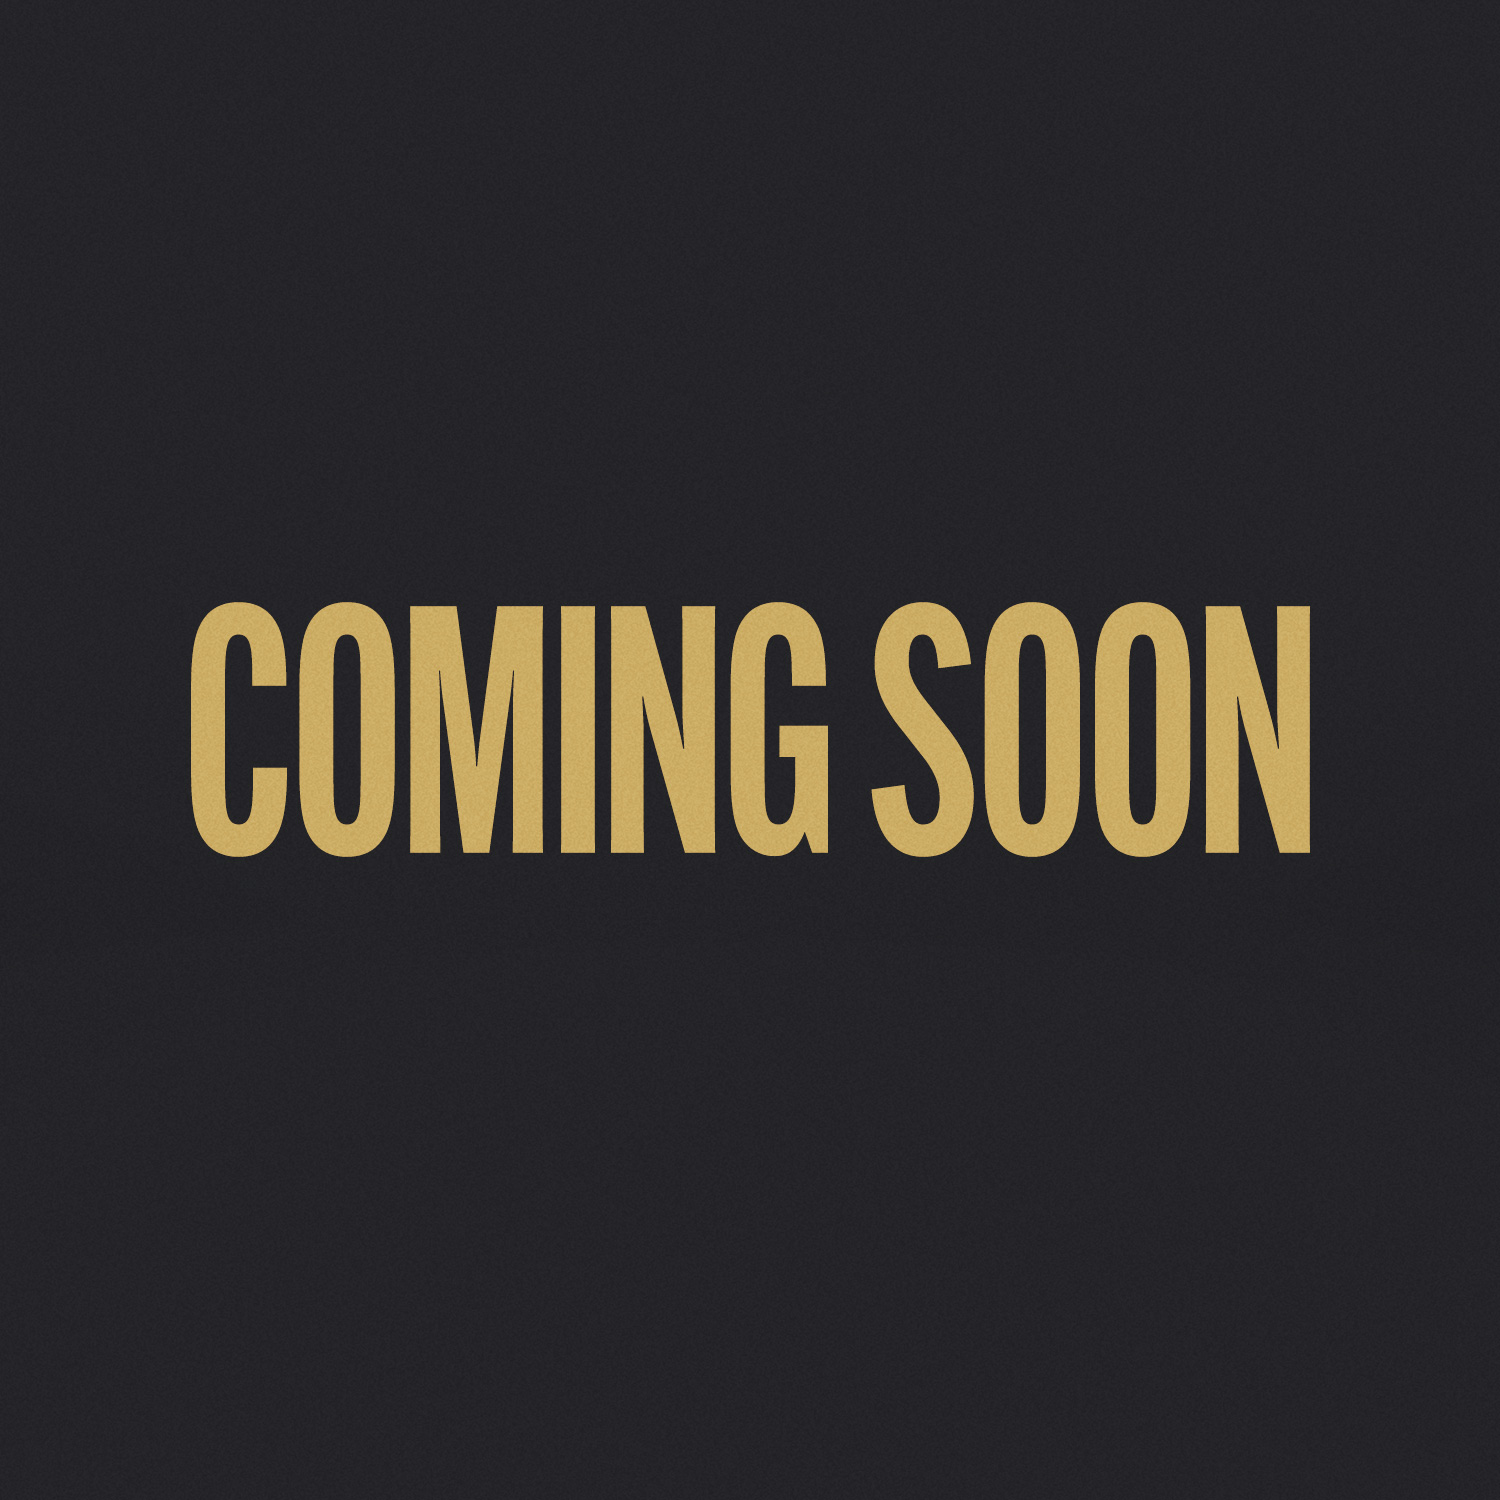 Nomad-Clothing-Co-Coming-Soon.jpg